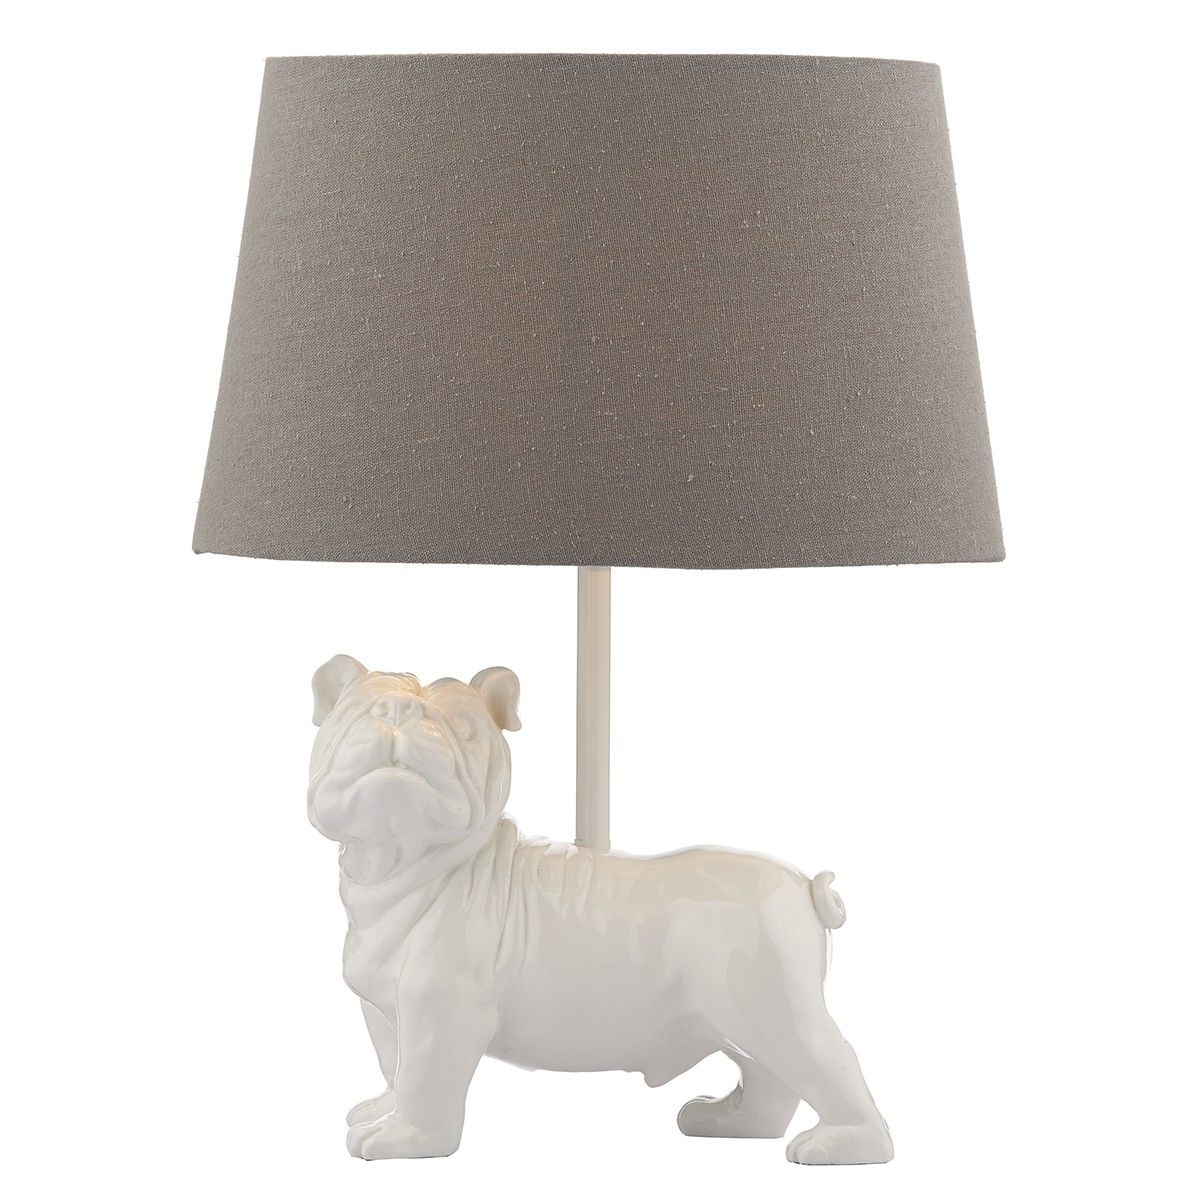 Fido Table Lamp White complete with Shade Table lamp